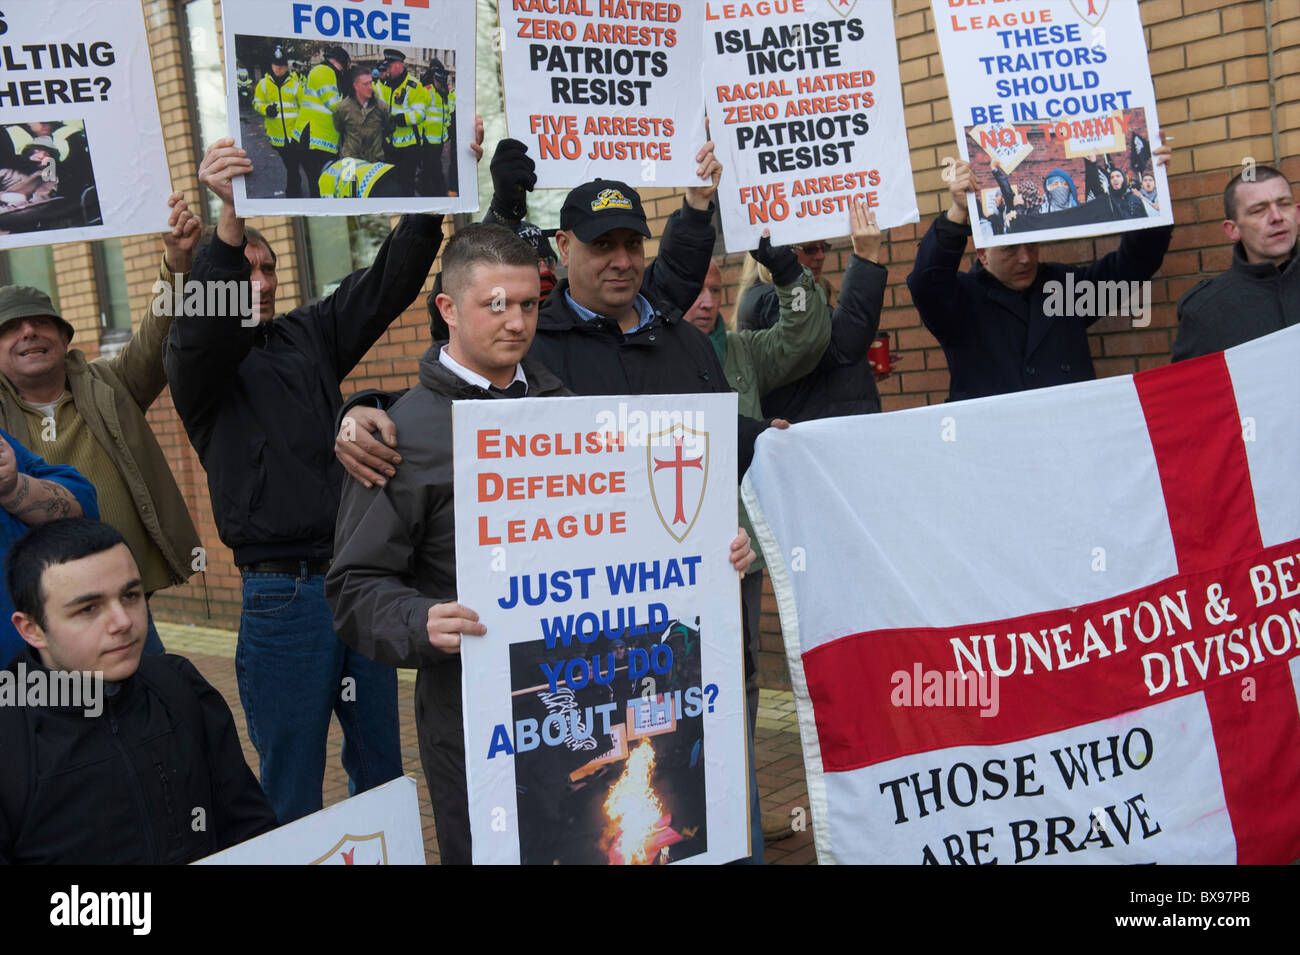 English Defence League (EDL) leader Tommy Robinson, also known as Stephen Lennon, and supporters arrive at the West - Stock Image